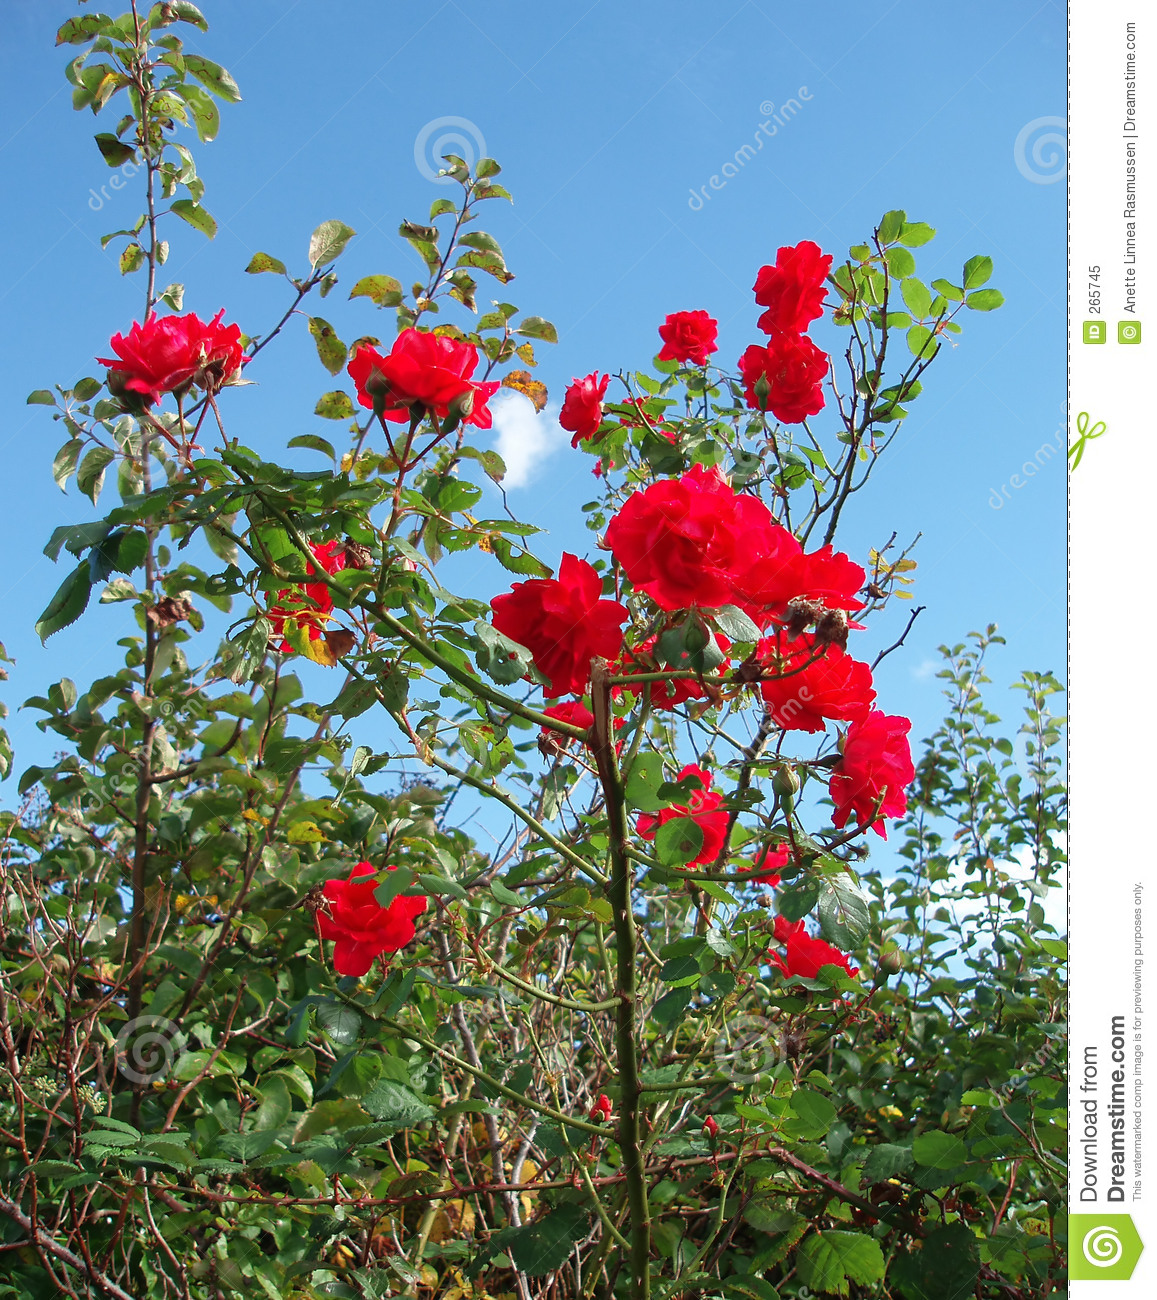 Roses rouges en nature sauvage